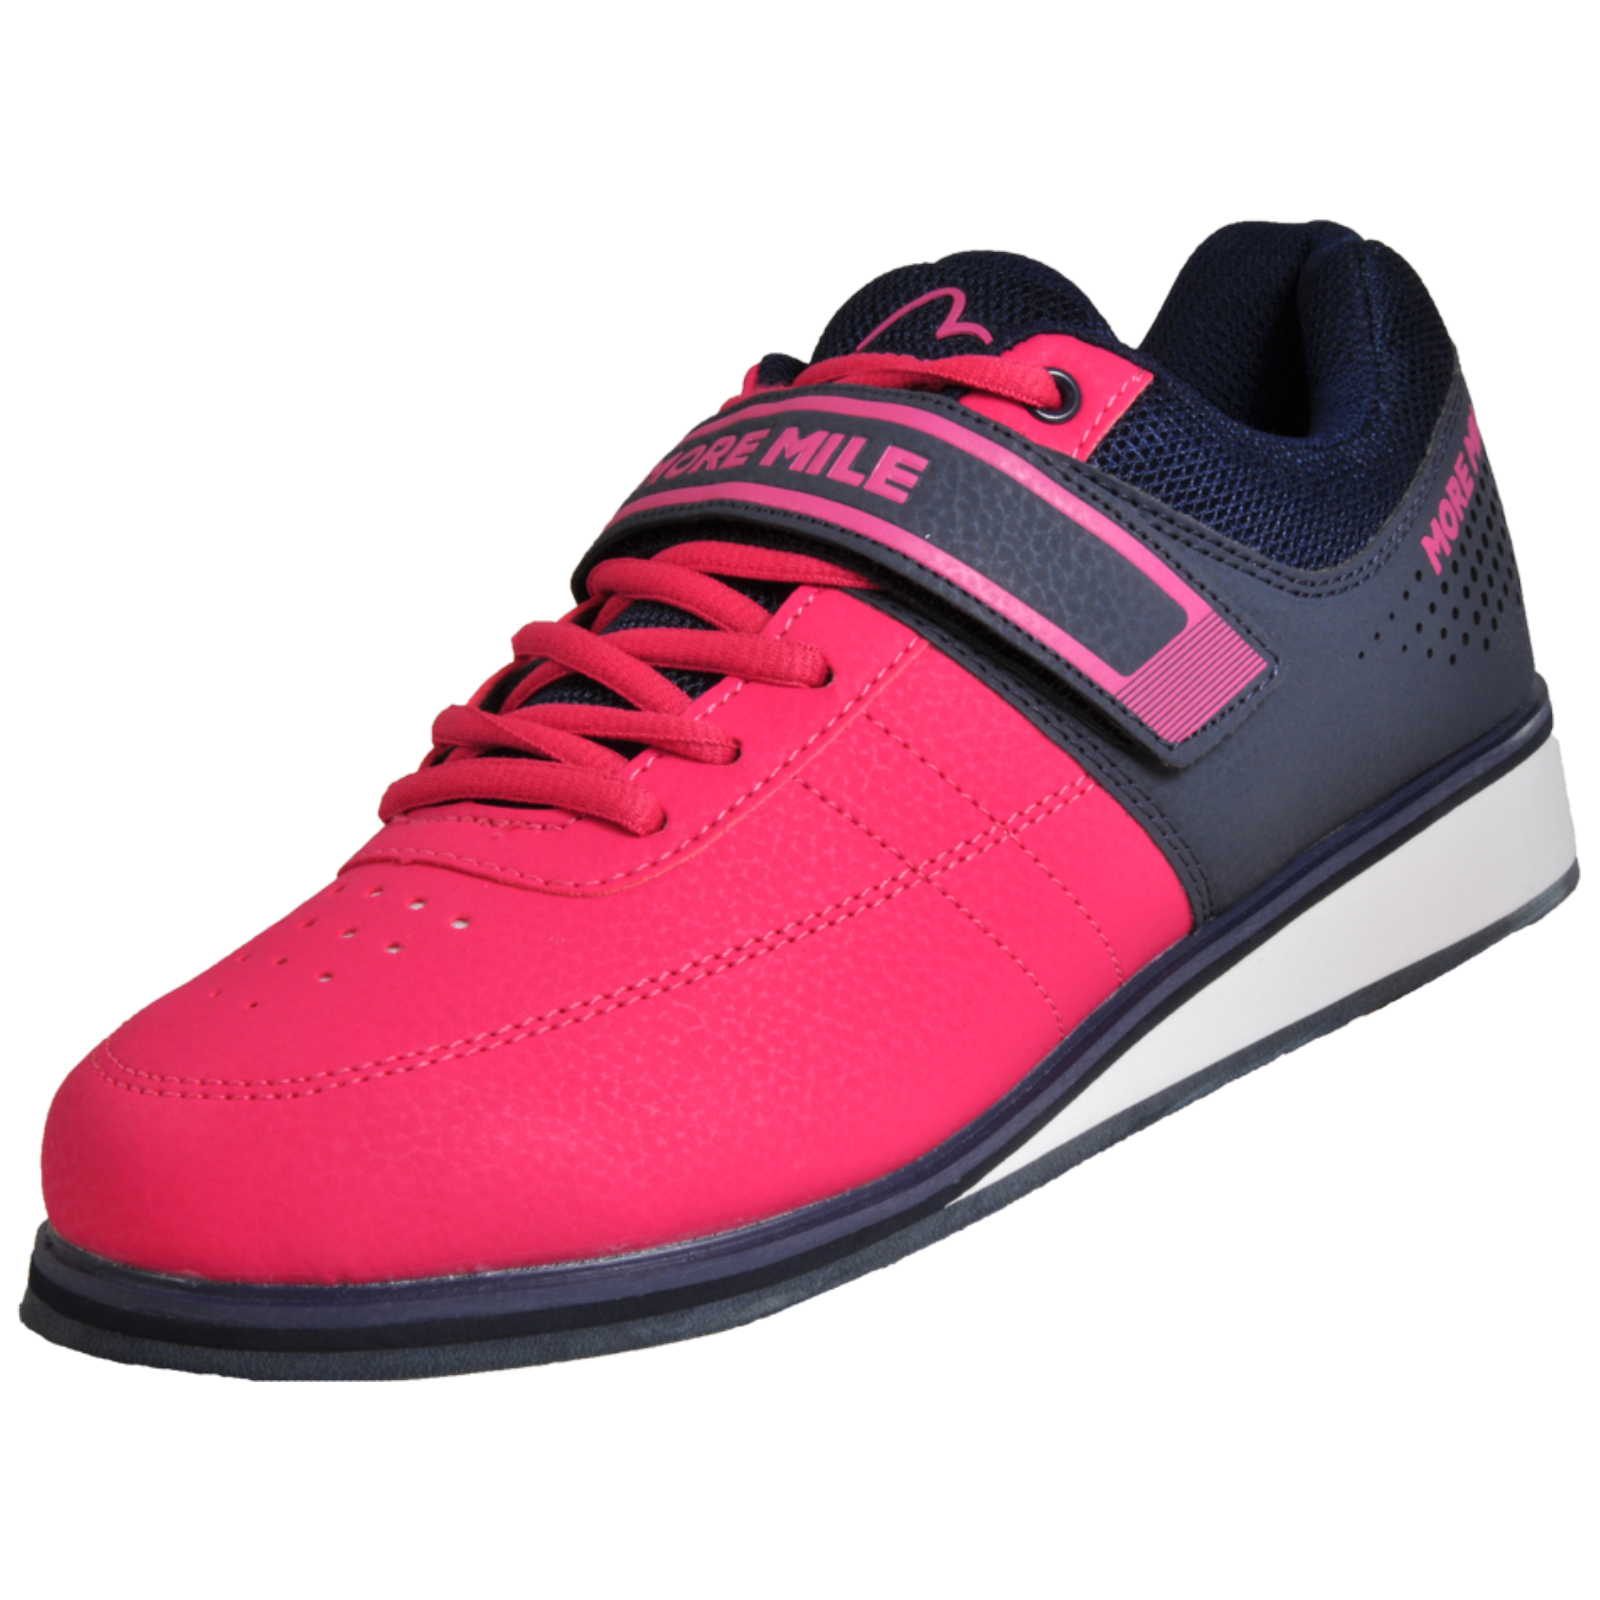 26b0a84e502a07 More Mile Lift 4 Women s Weightlifting Cross Fit Gym Training Shoes ...